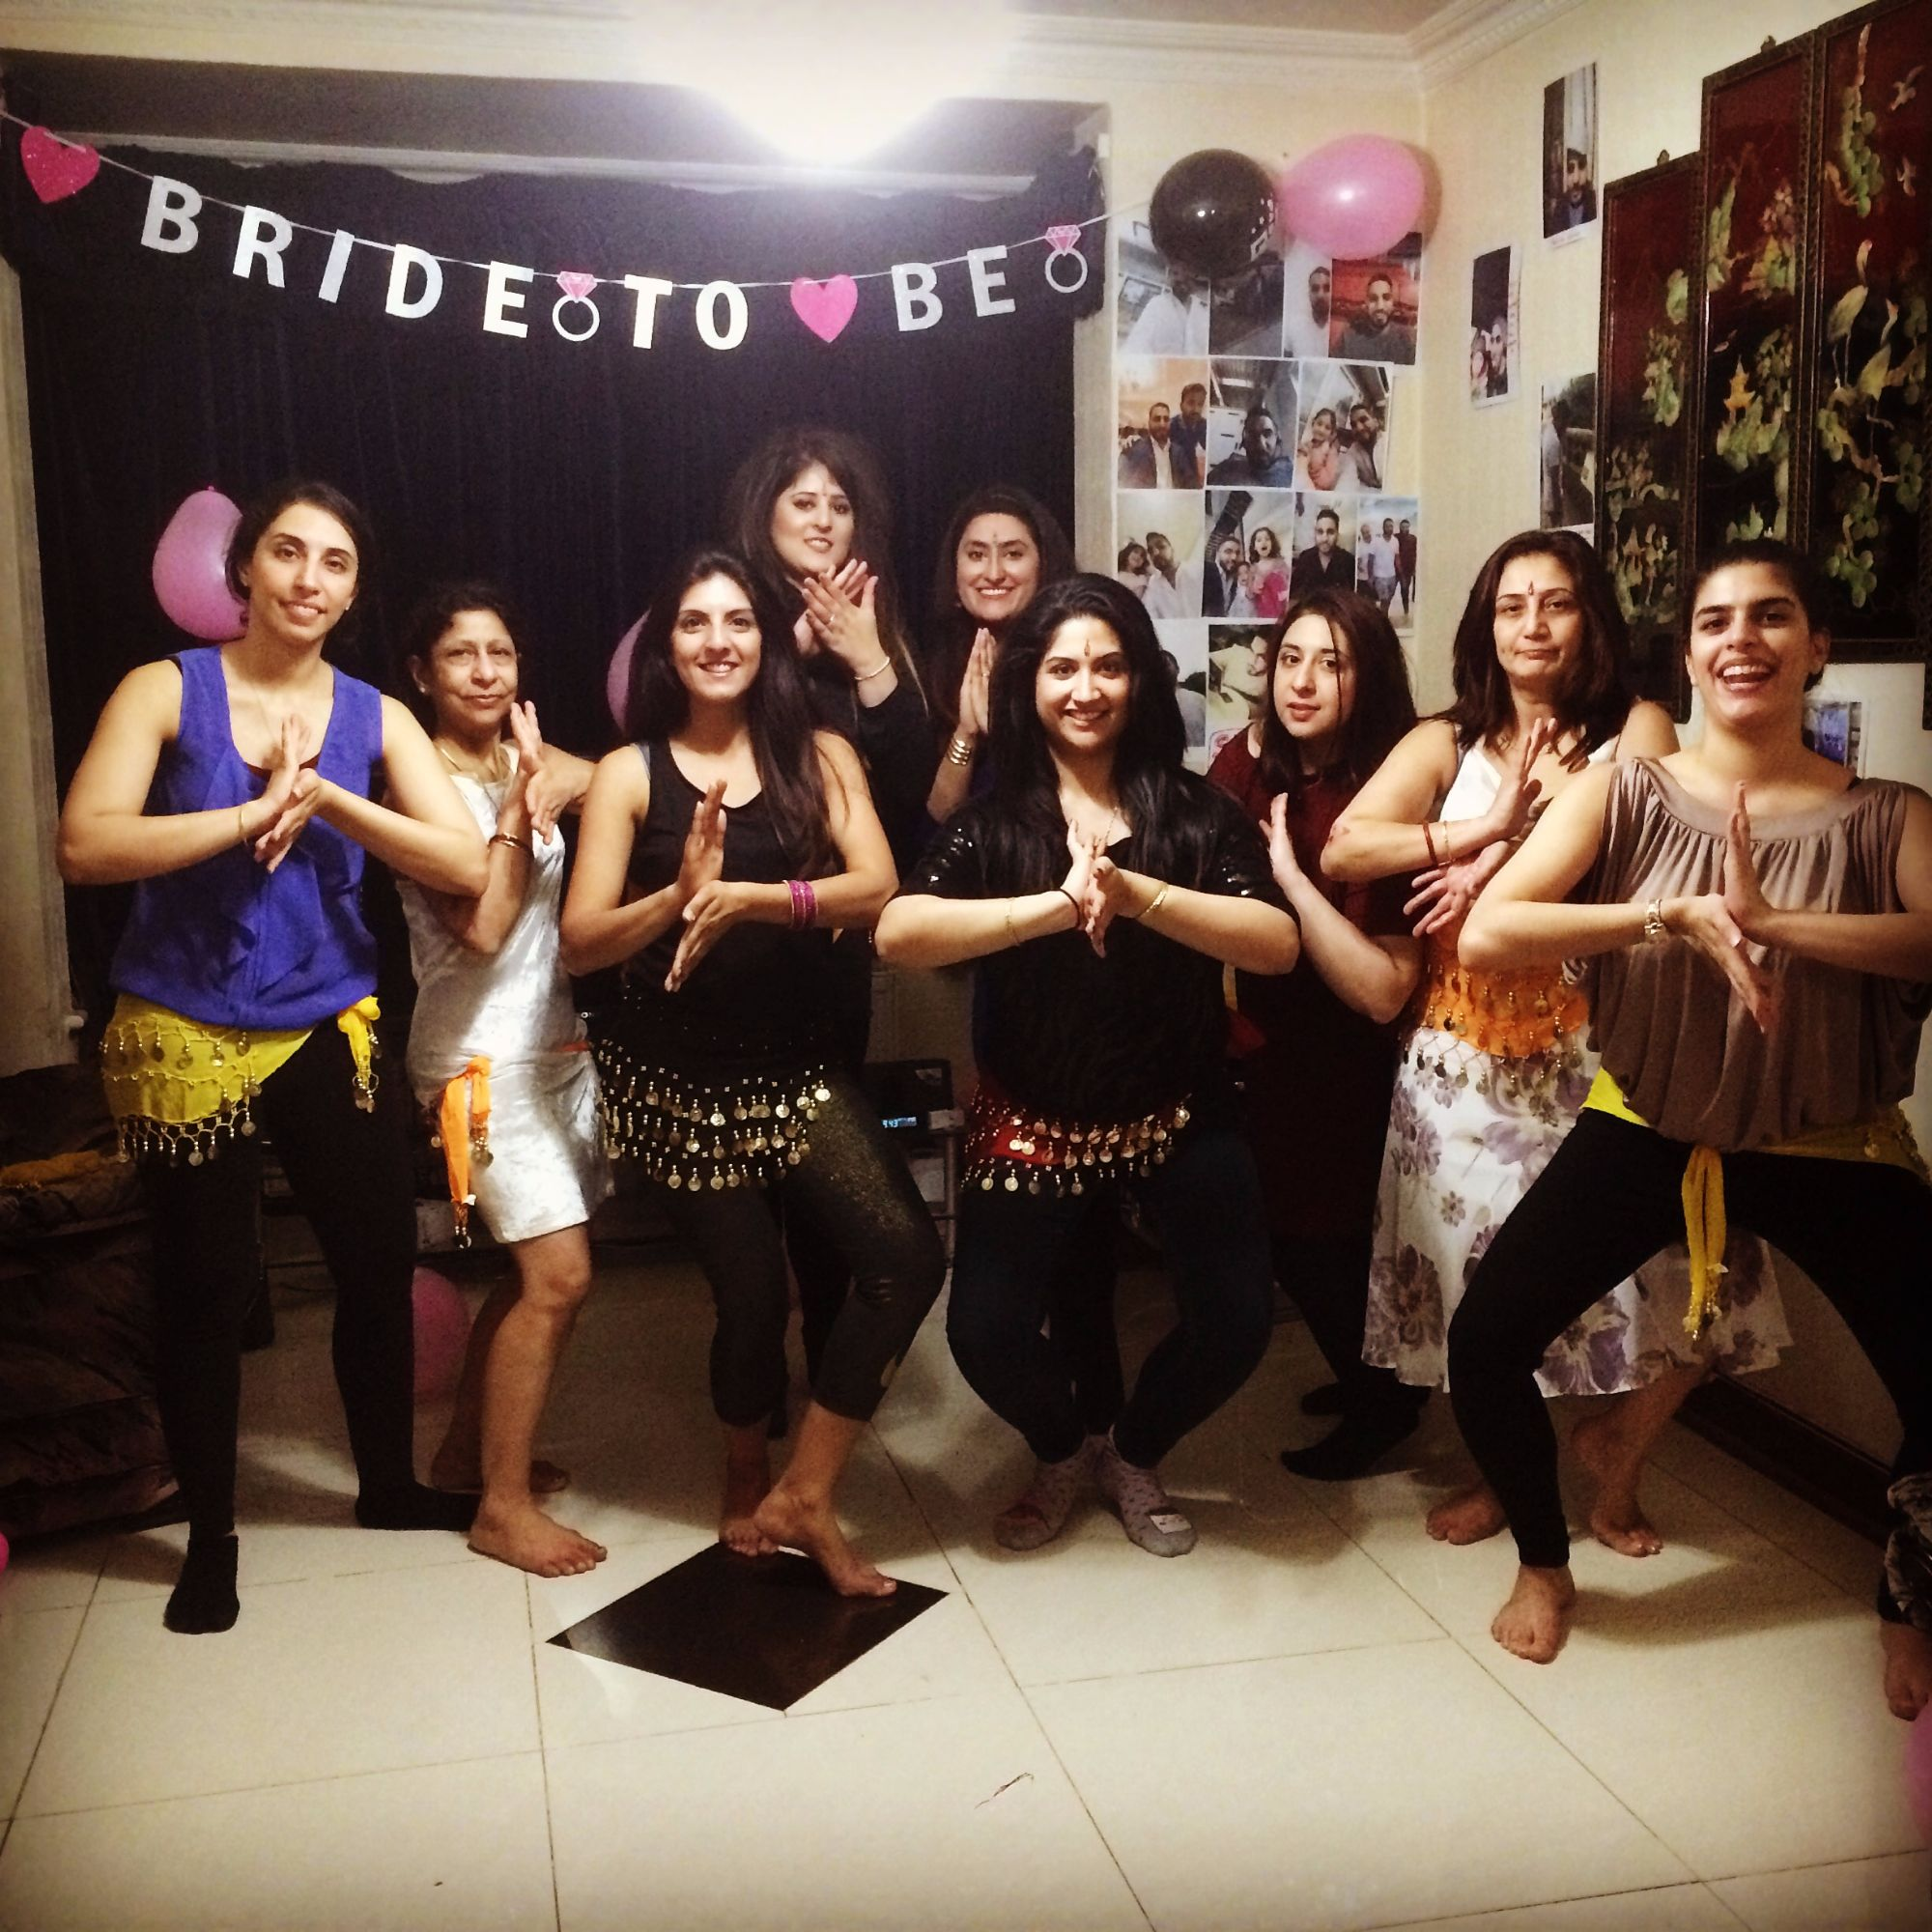 Bollywood Dancing Hen Party